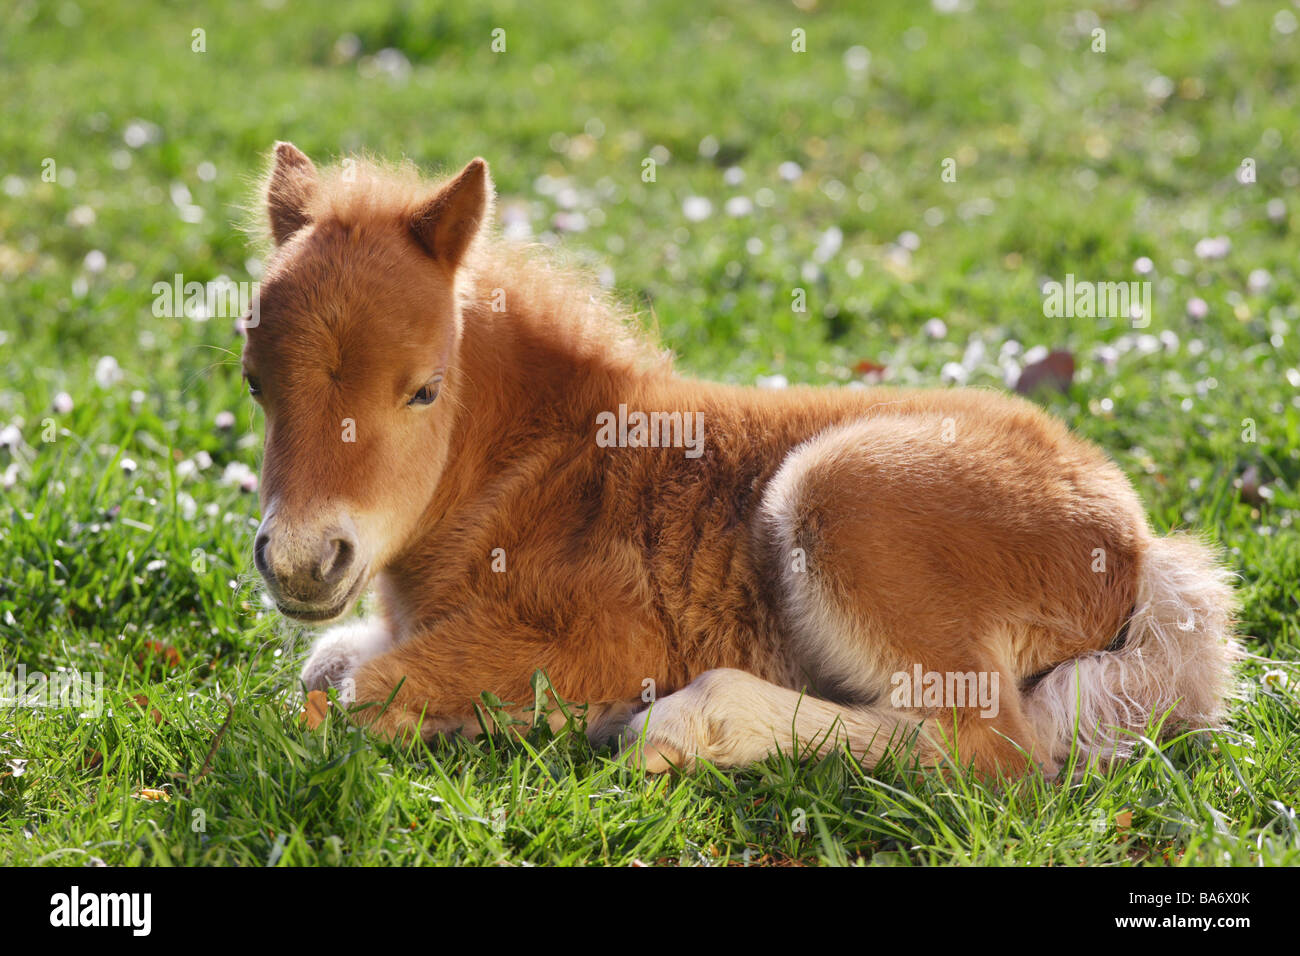 mini shetland pony fohlen im grass liegen stockfoto bild 23509043 alamy. Black Bedroom Furniture Sets. Home Design Ideas